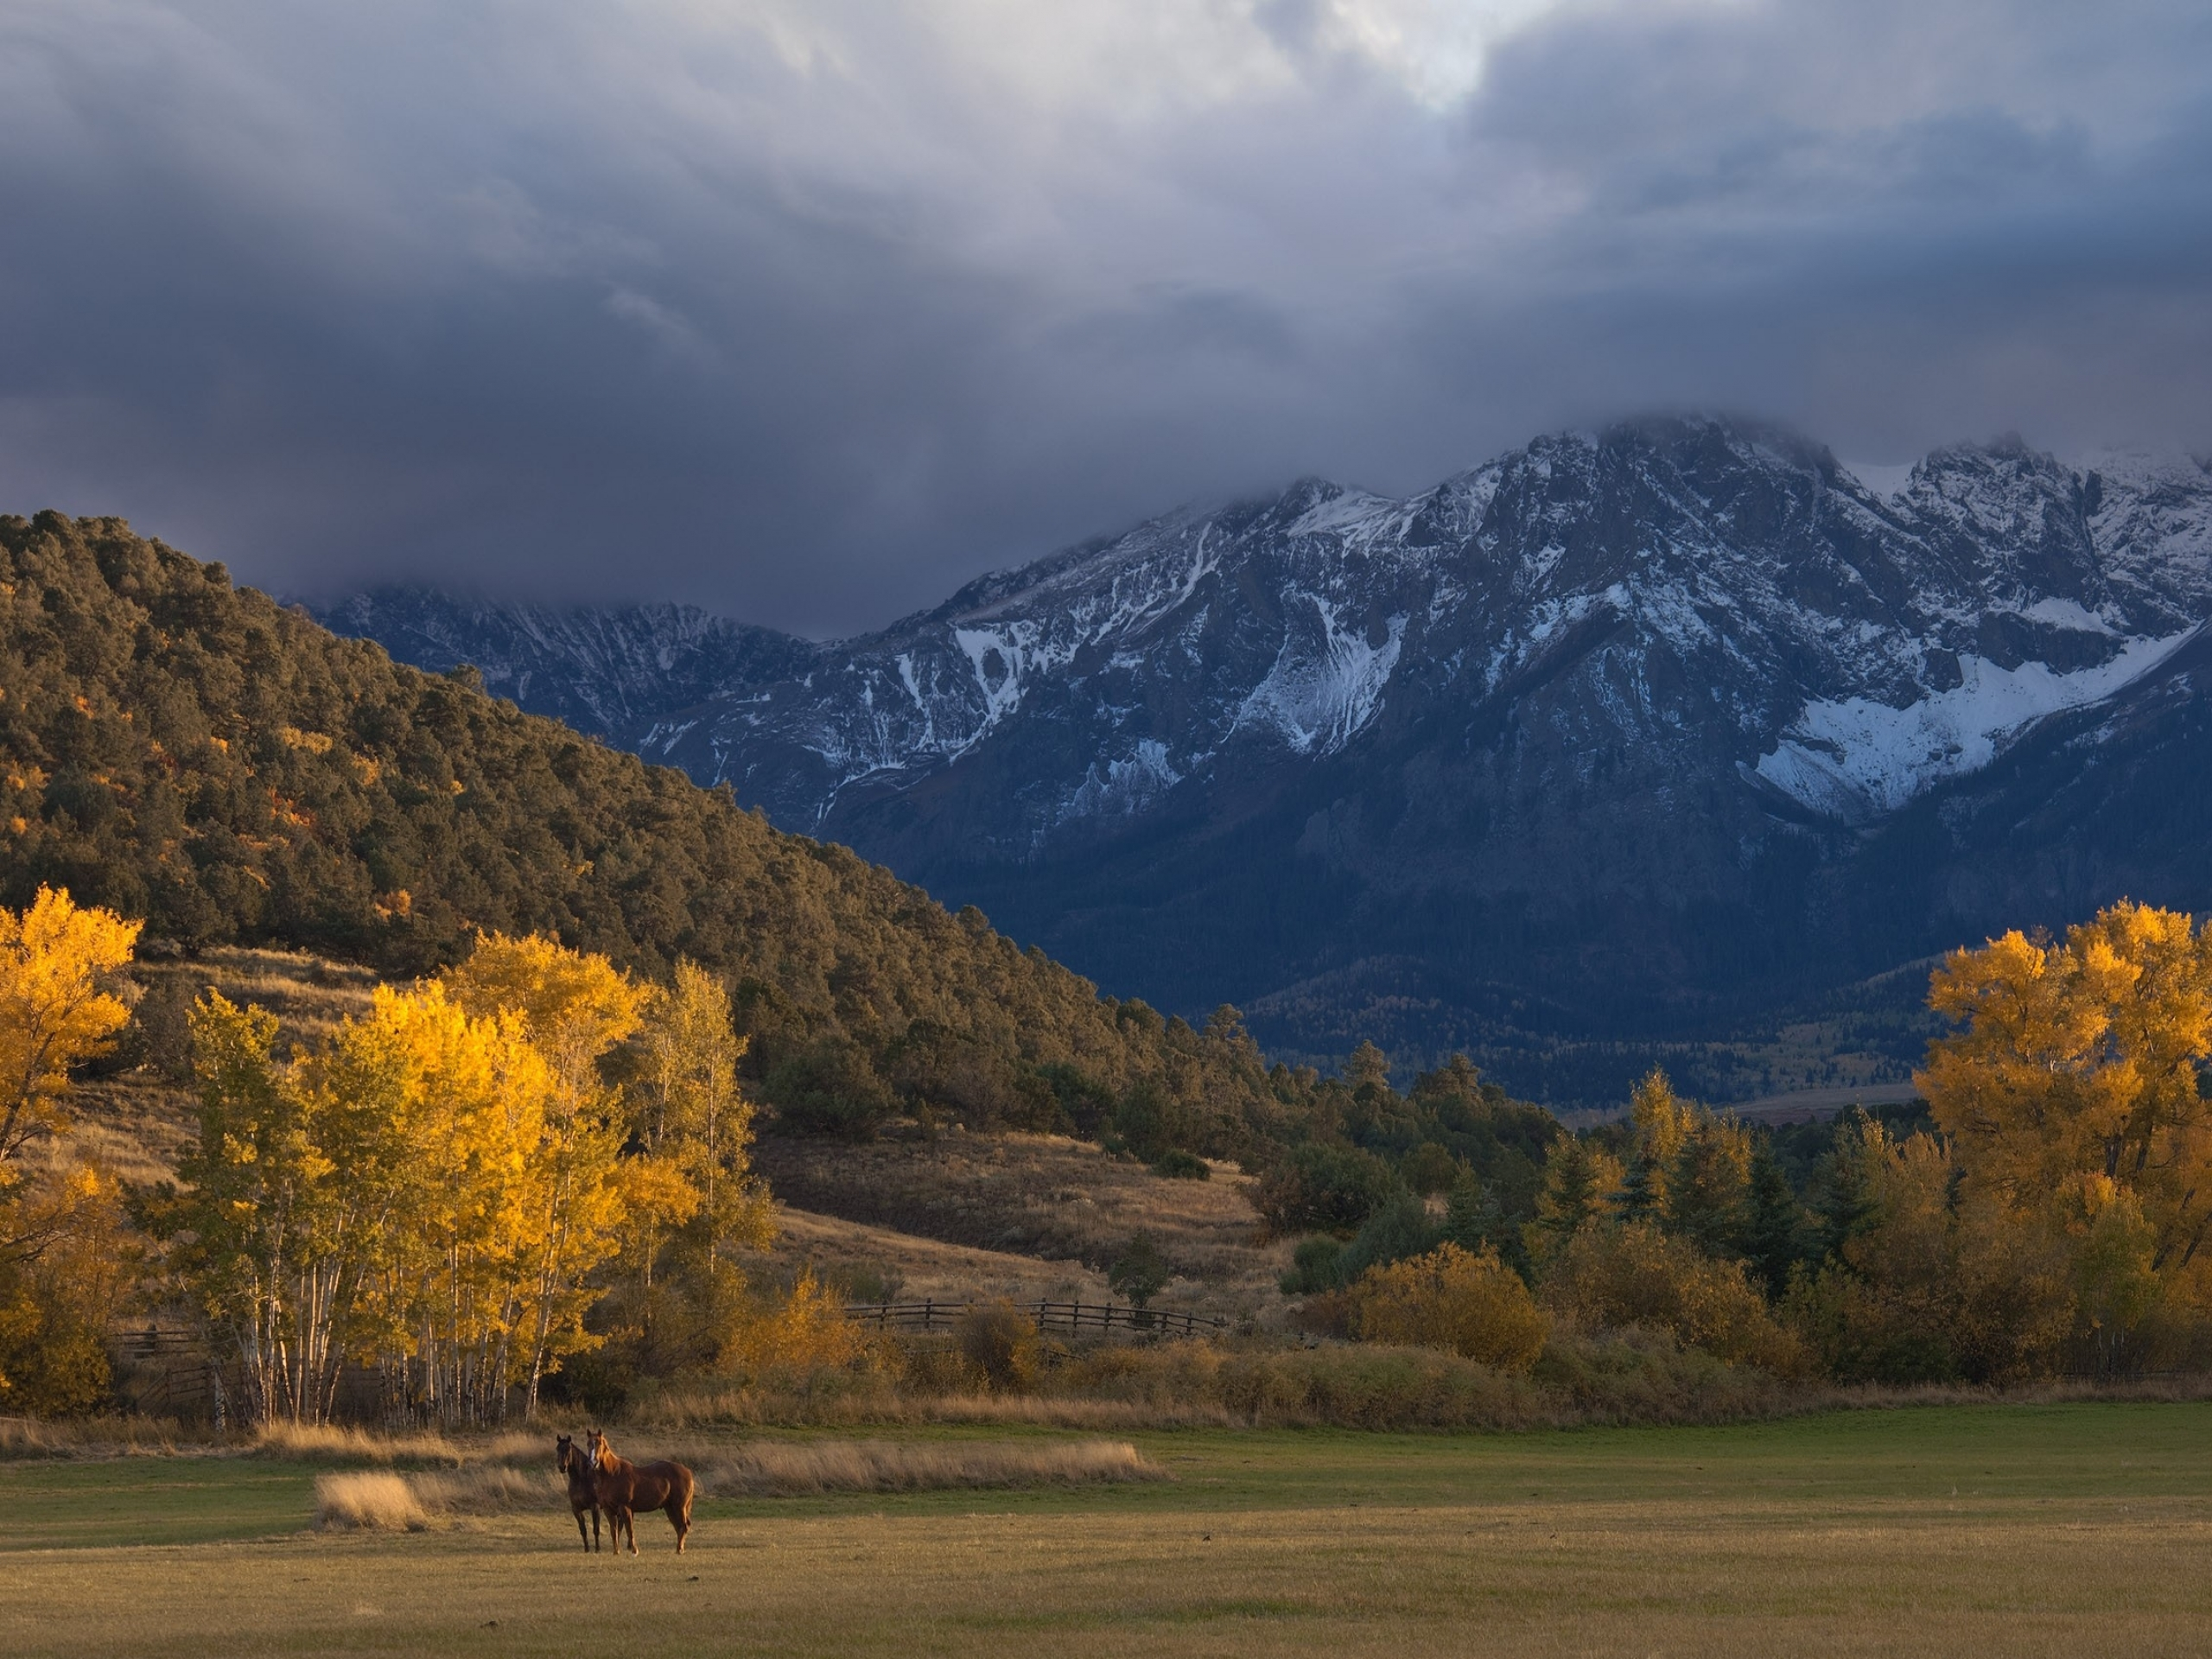 Mountains Scenery Amp Horses Wallpapers Mountains Scenery